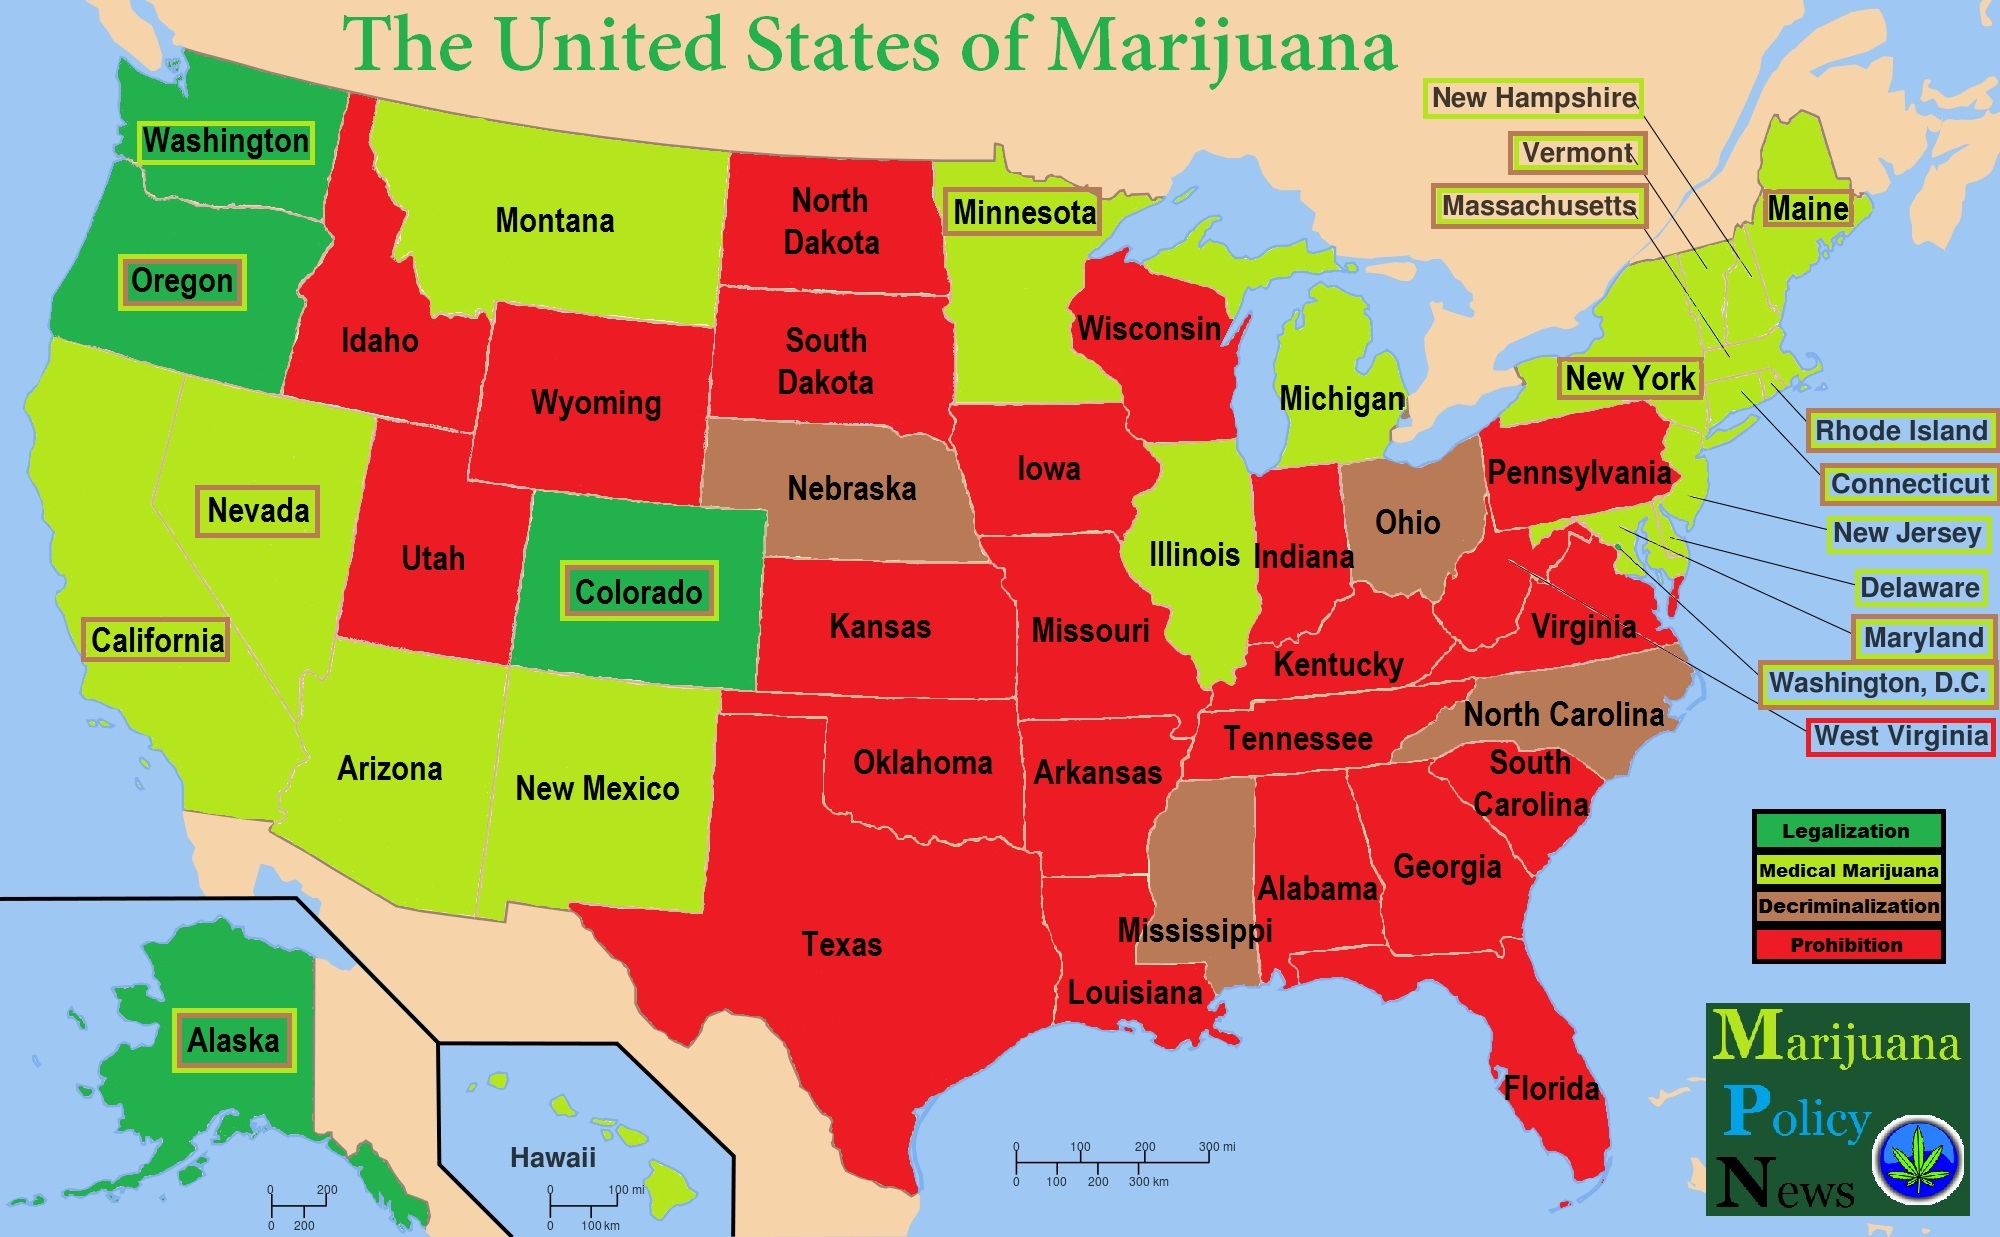 The United States of Marijuana - Medical Marijuana